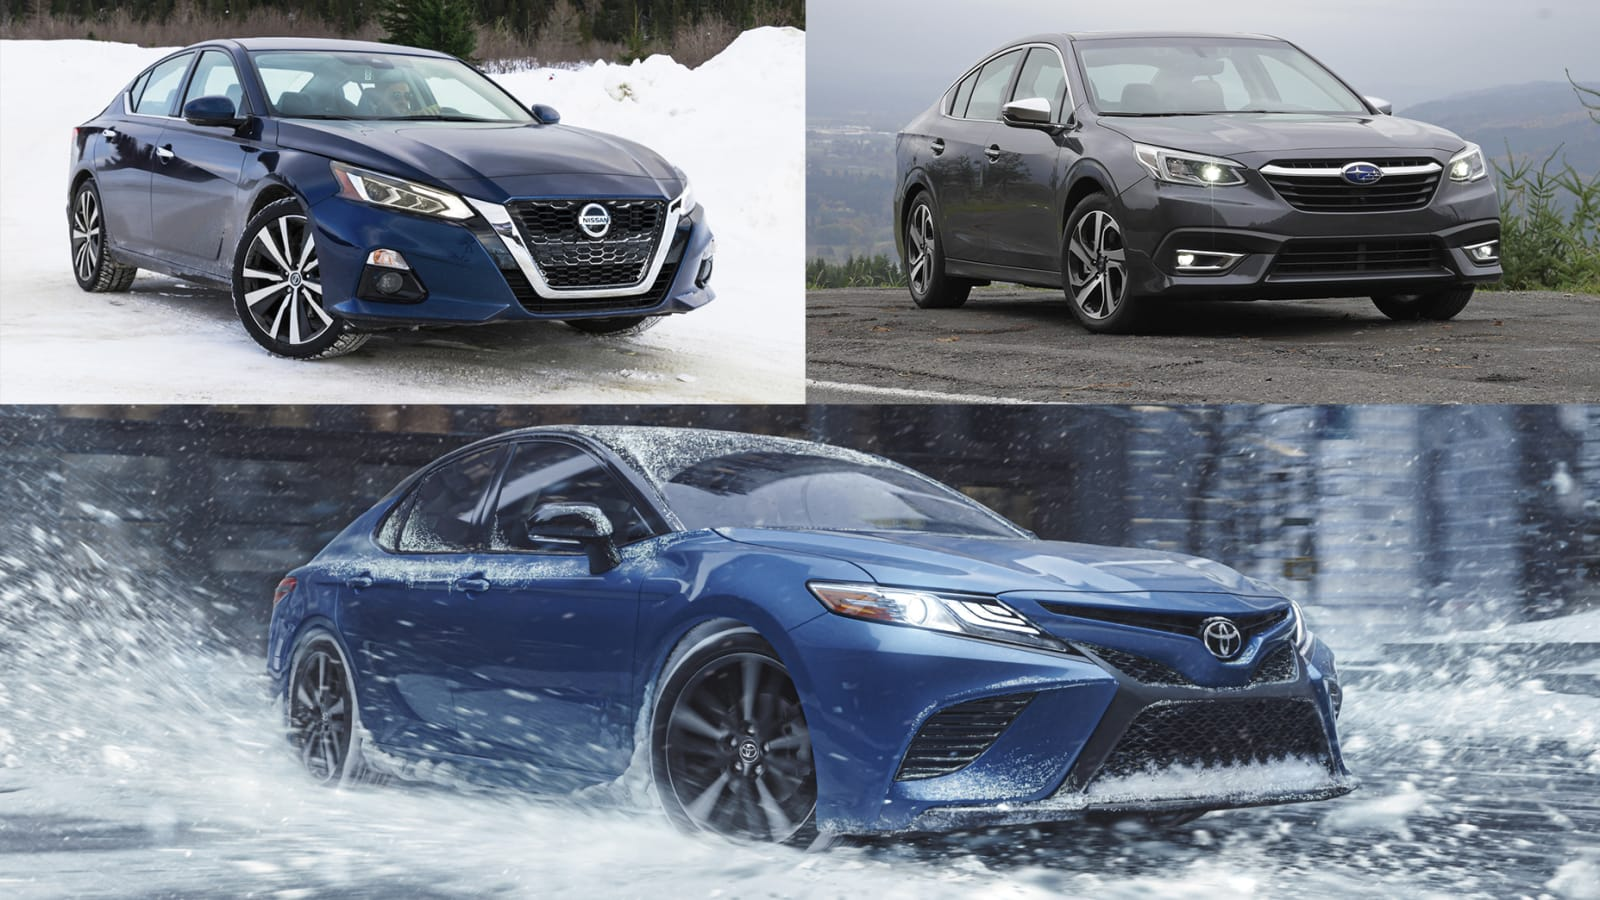 2021 Nissan Altima Review | Price, specs, features and photos